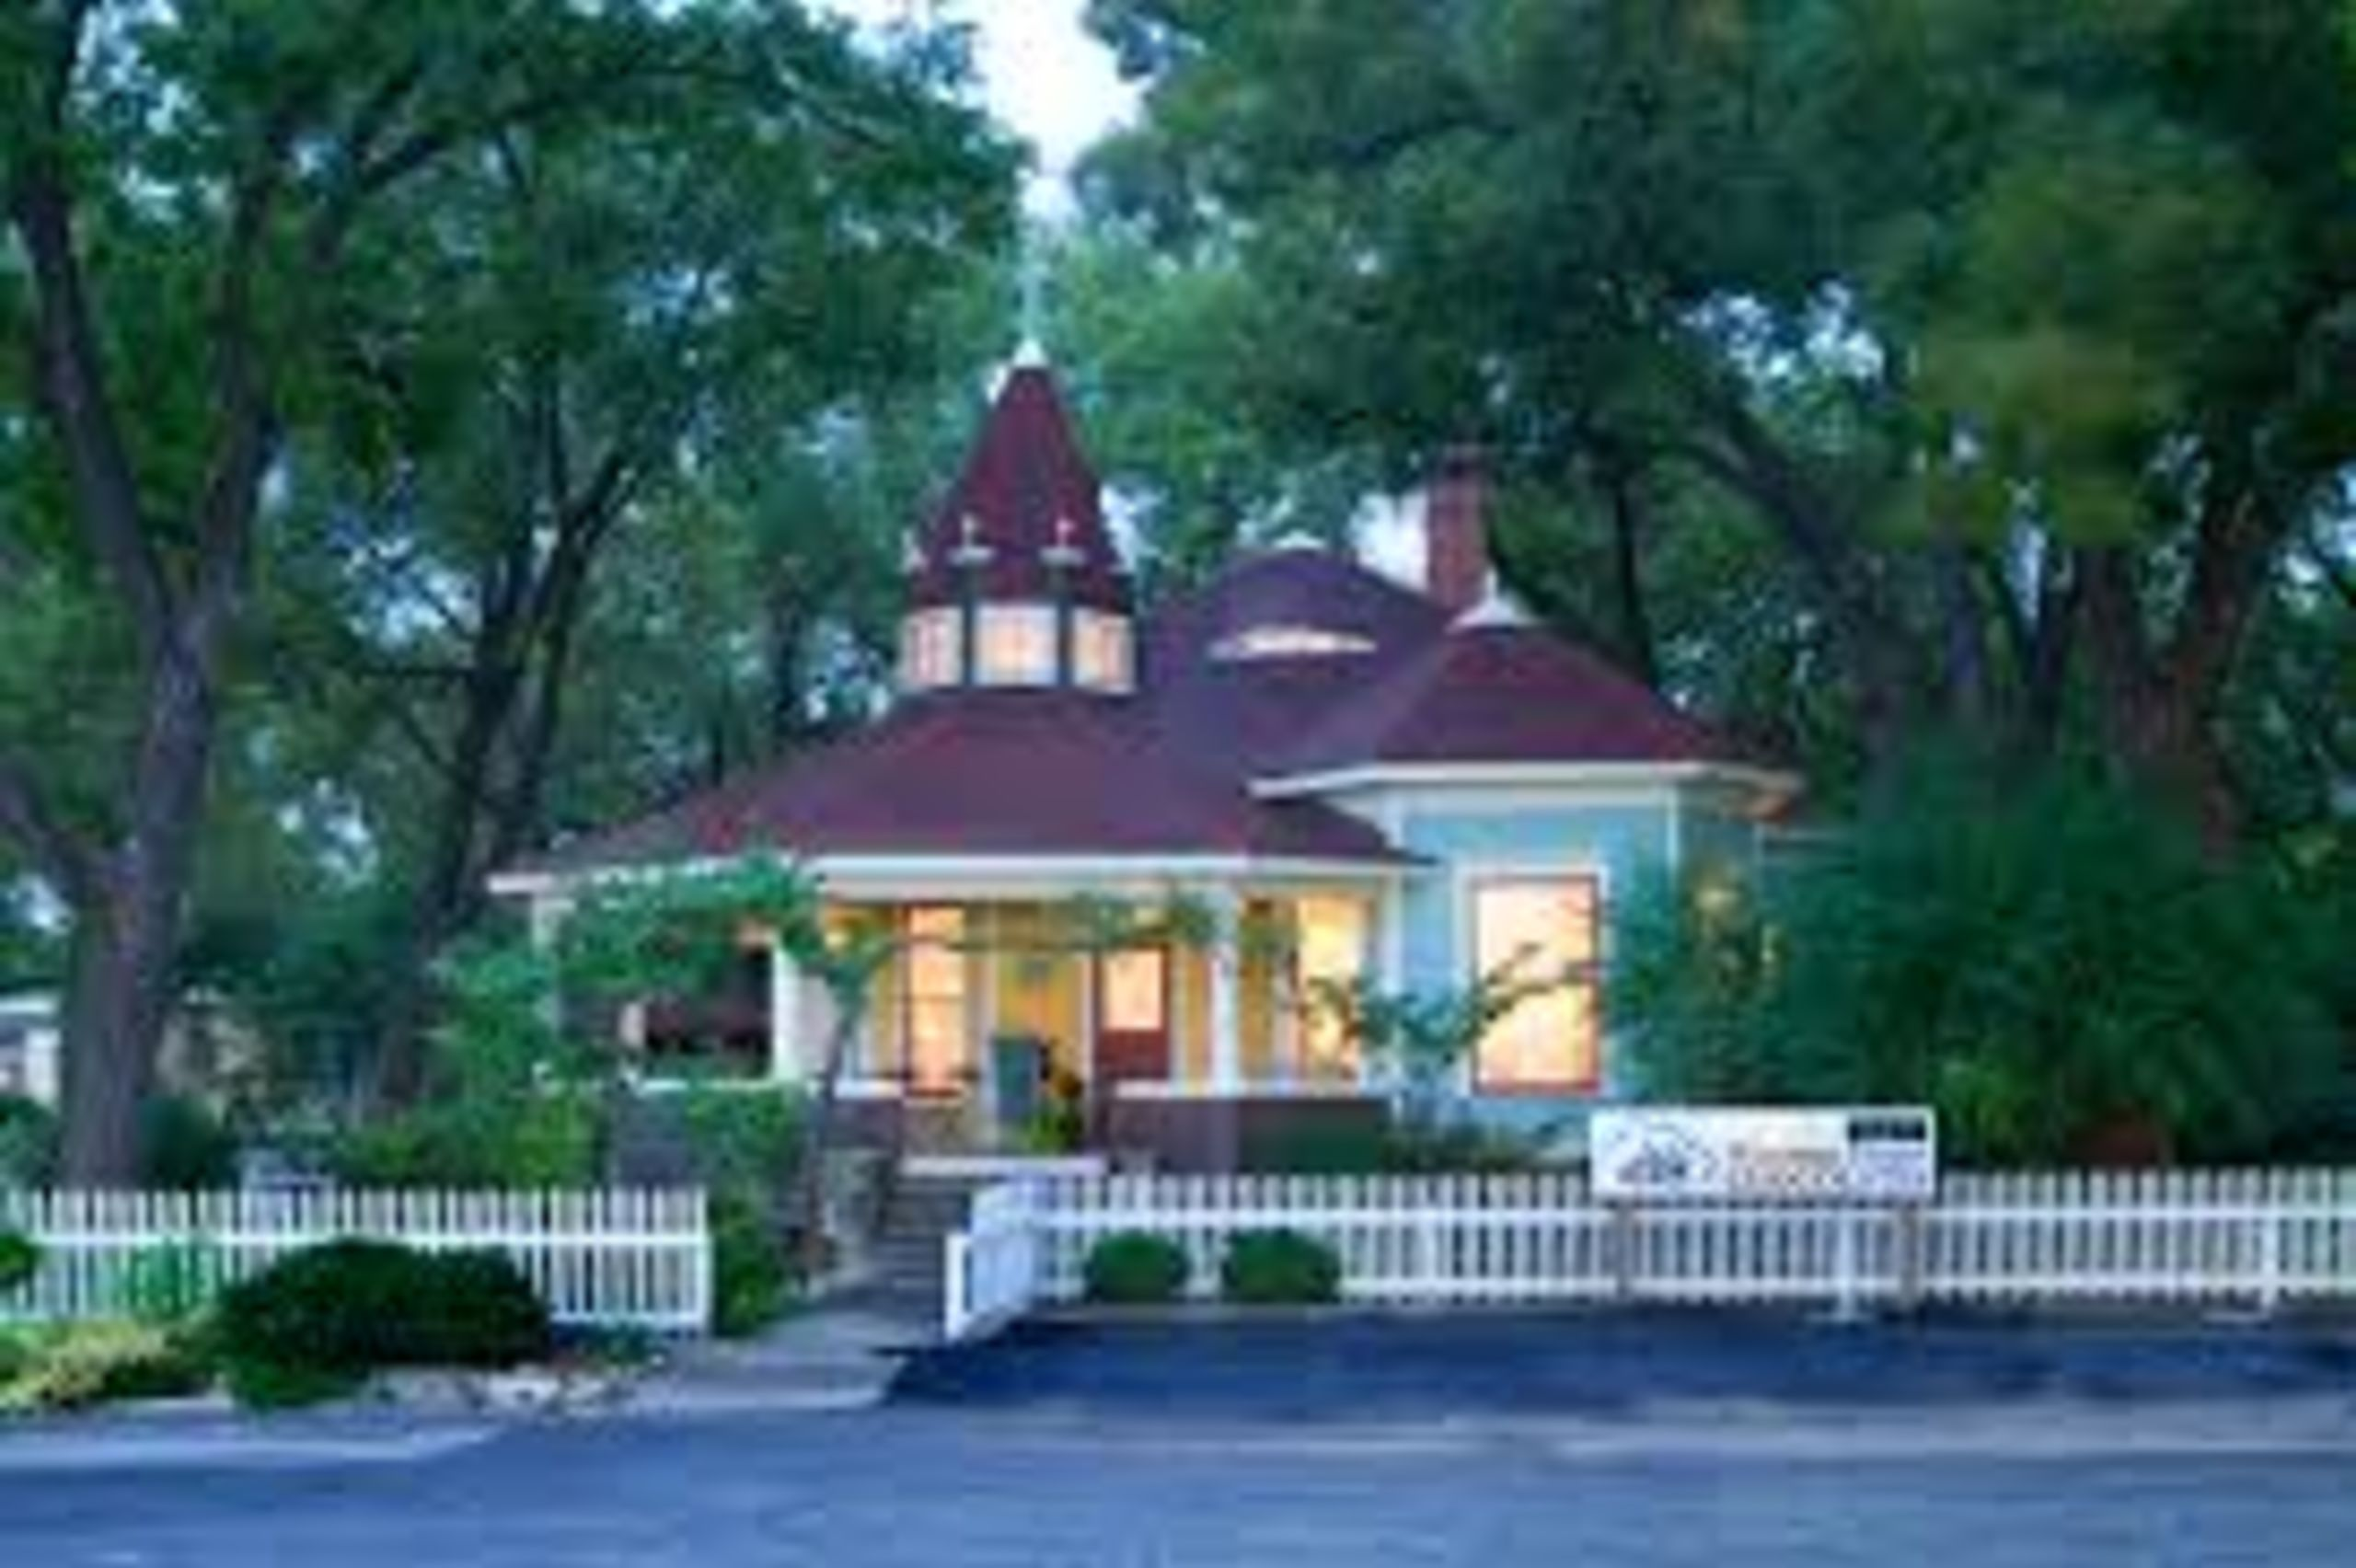 Buy a home or ranch in Hico Texas Sell your home ranch or